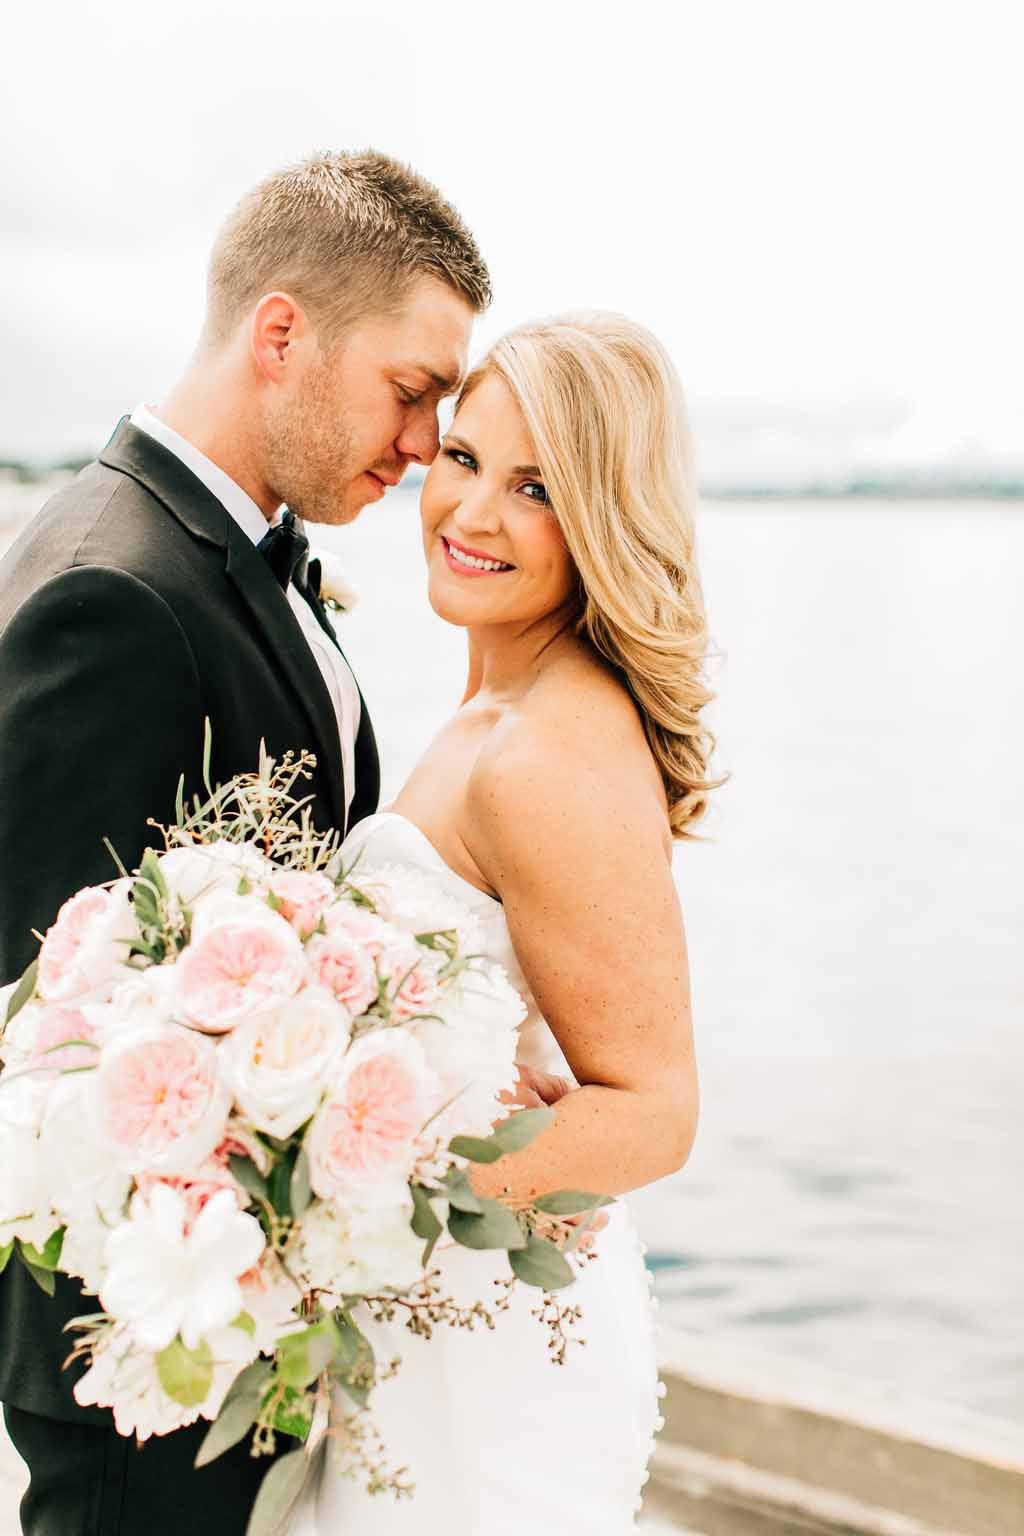 Wedding couple with lush spring bouquet of peach Juliet garden roses, ivory roses, white peonies - designed by Flora Nova Design Seattle